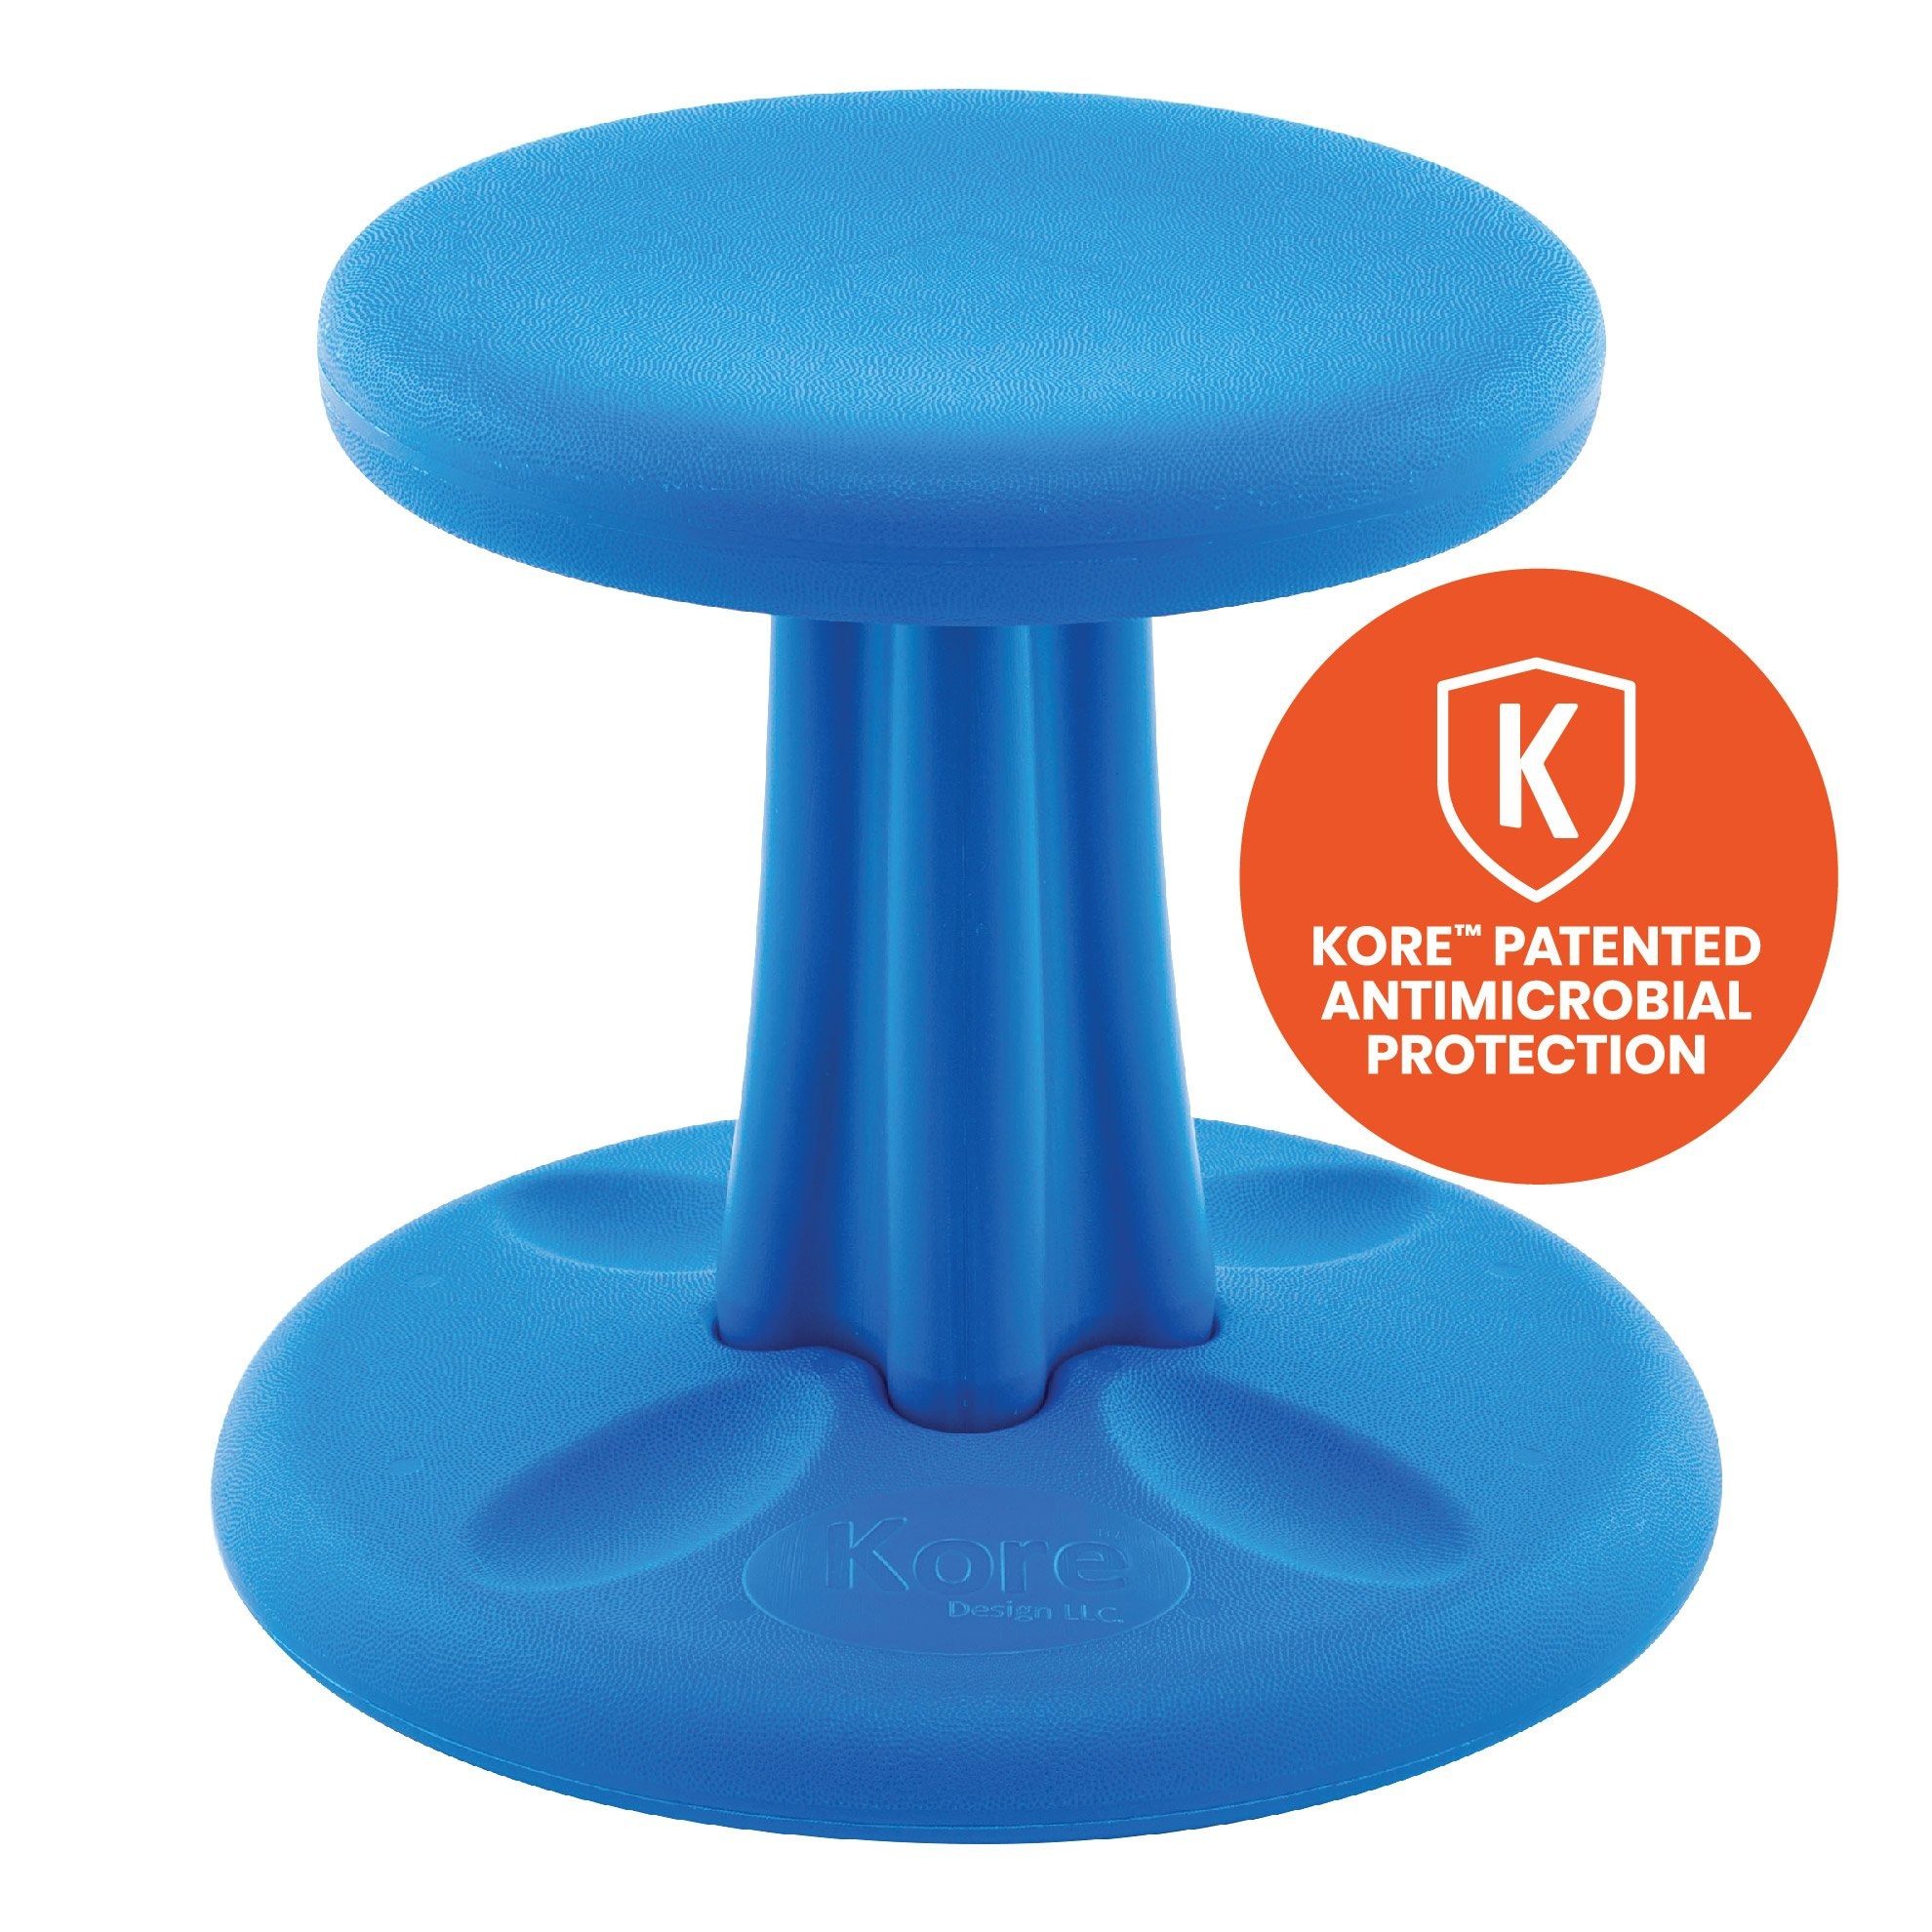 Kore Patented WOBBLE Chair   Now Antimicrobial Protection   Stem Flexible Seating   Made in the USA - Active Sitting Kids - Preschool, Blue (12in)